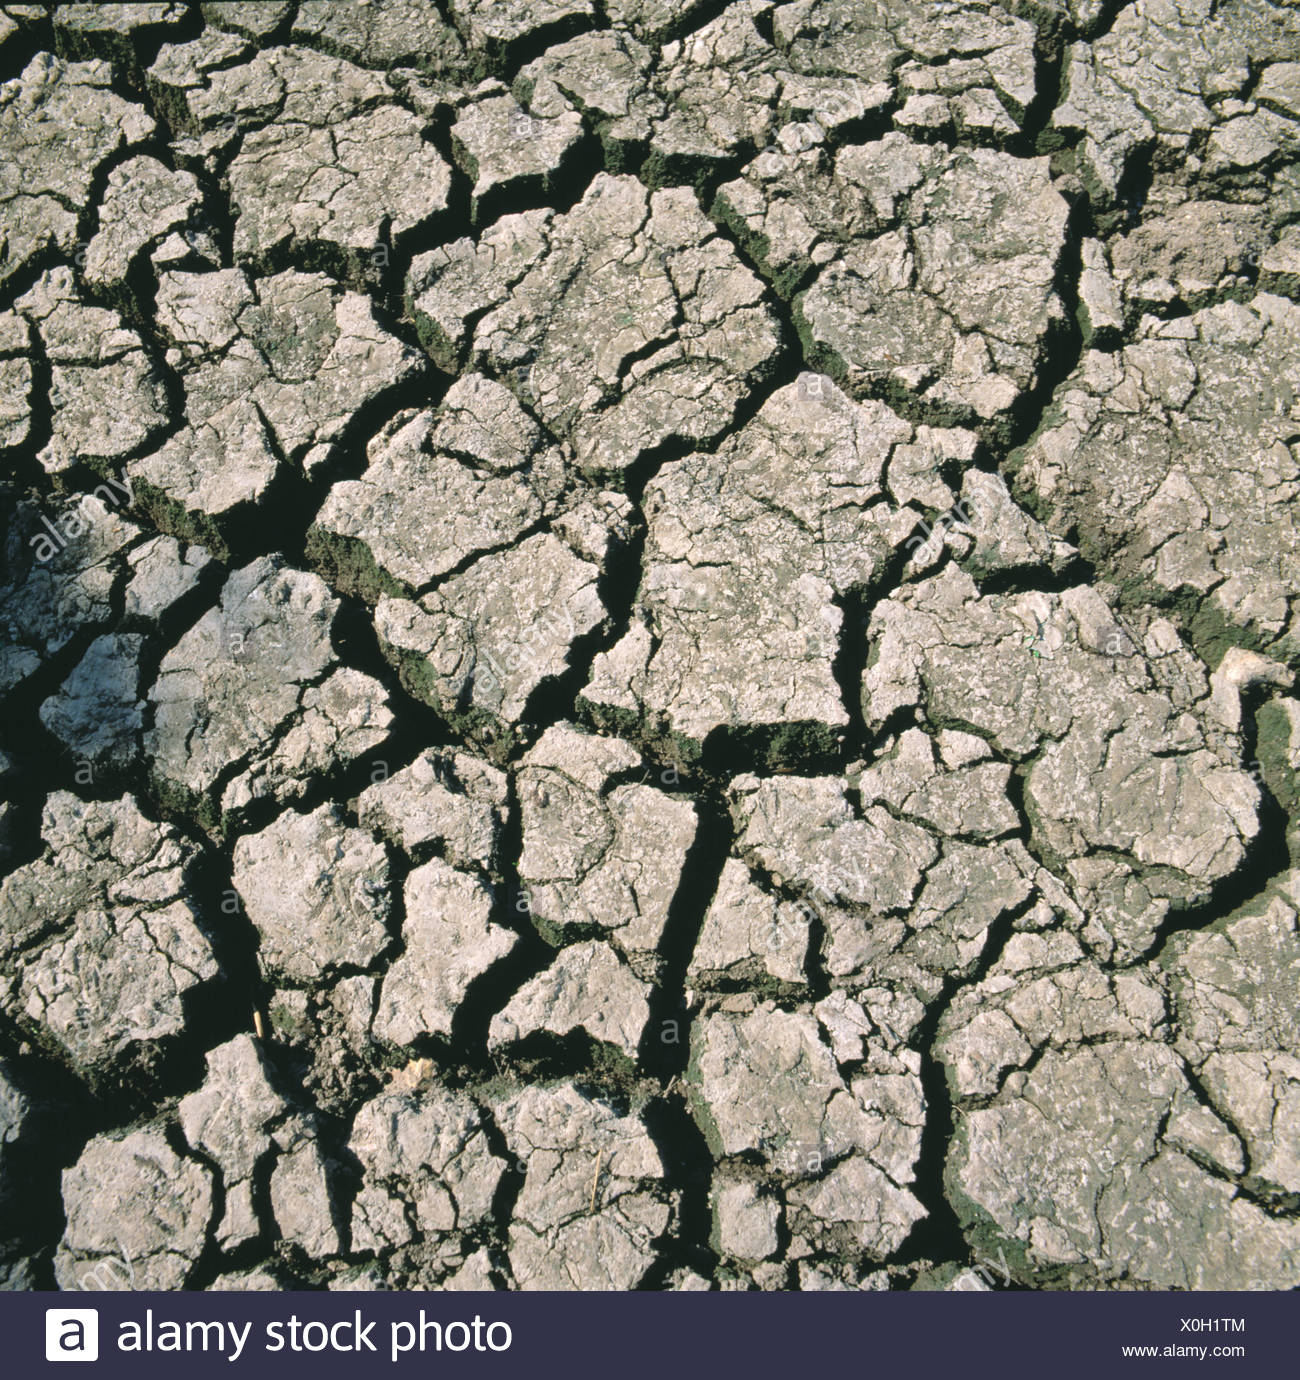 Dry and cracked soil drying out in a severe drought - Stock Image